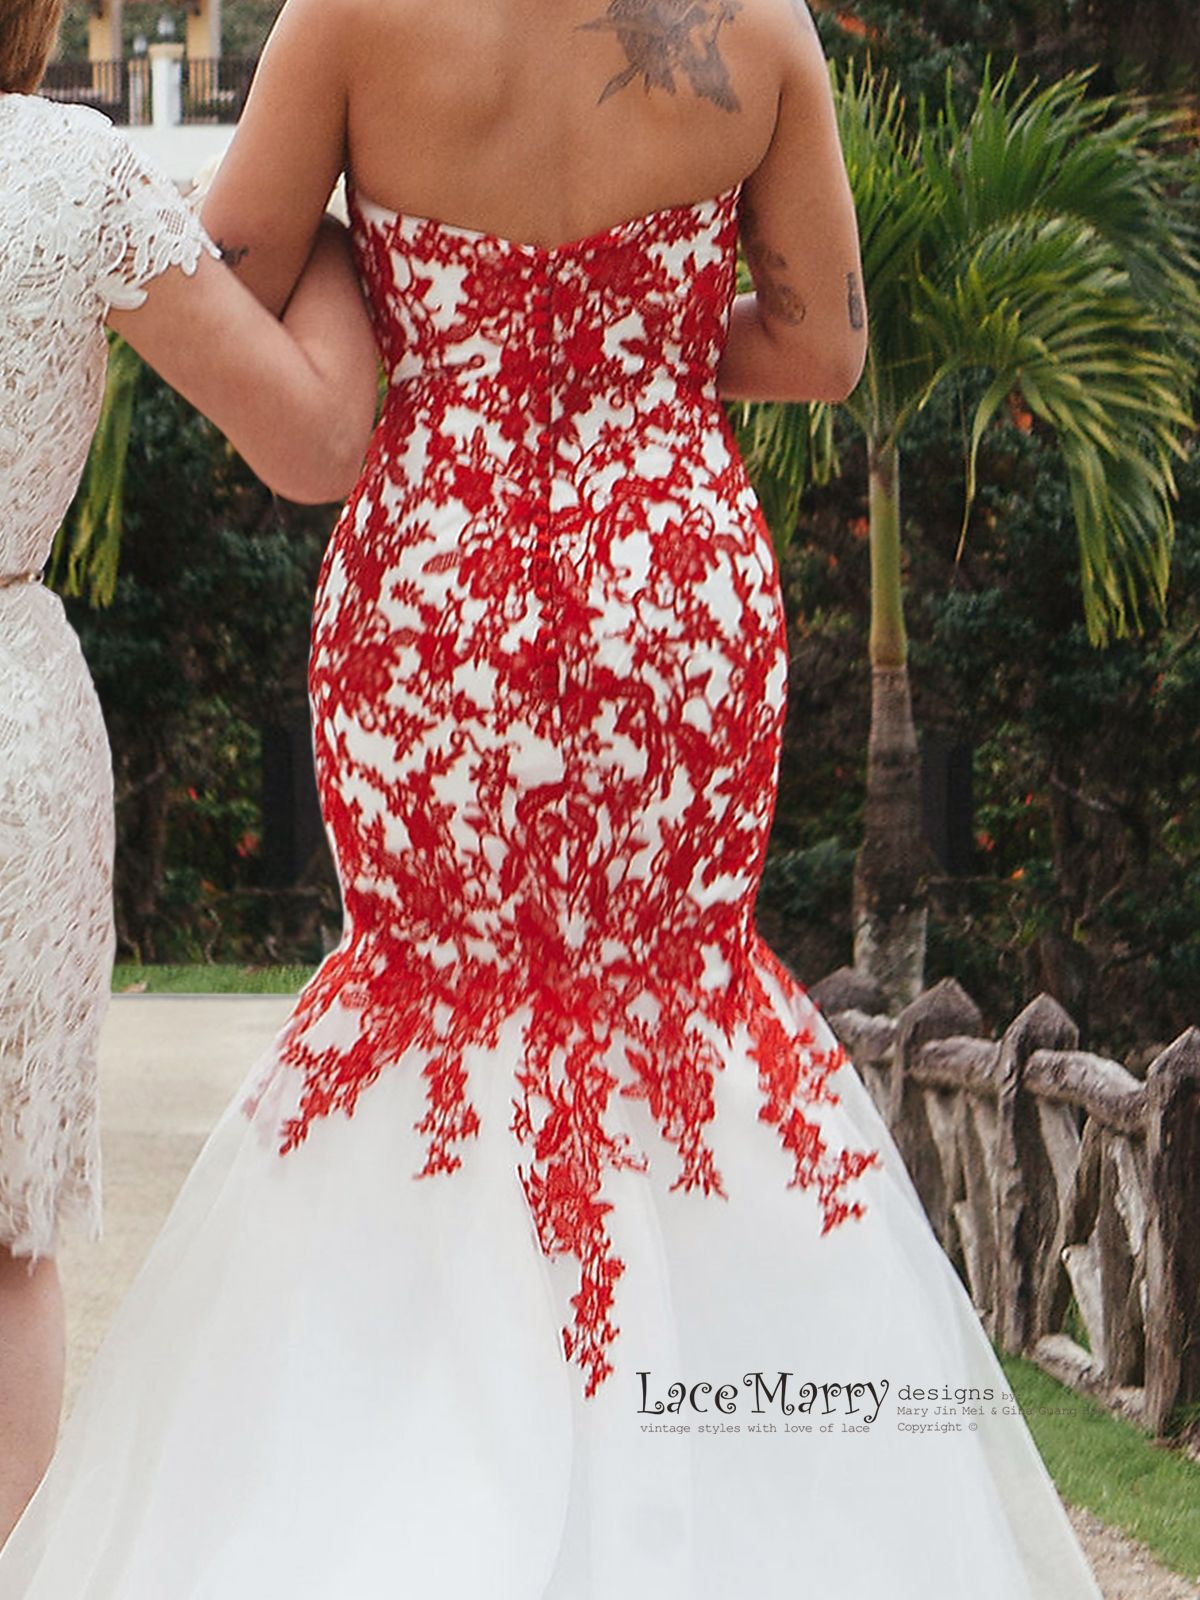 Red Lace Wedding Dress With Ivory Tulle Strapless Sweetheart Etsy Red Lace Wedding Dress White Bridal Gown Red Wedding Dresses [ 1600 x 1200 Pixel ]